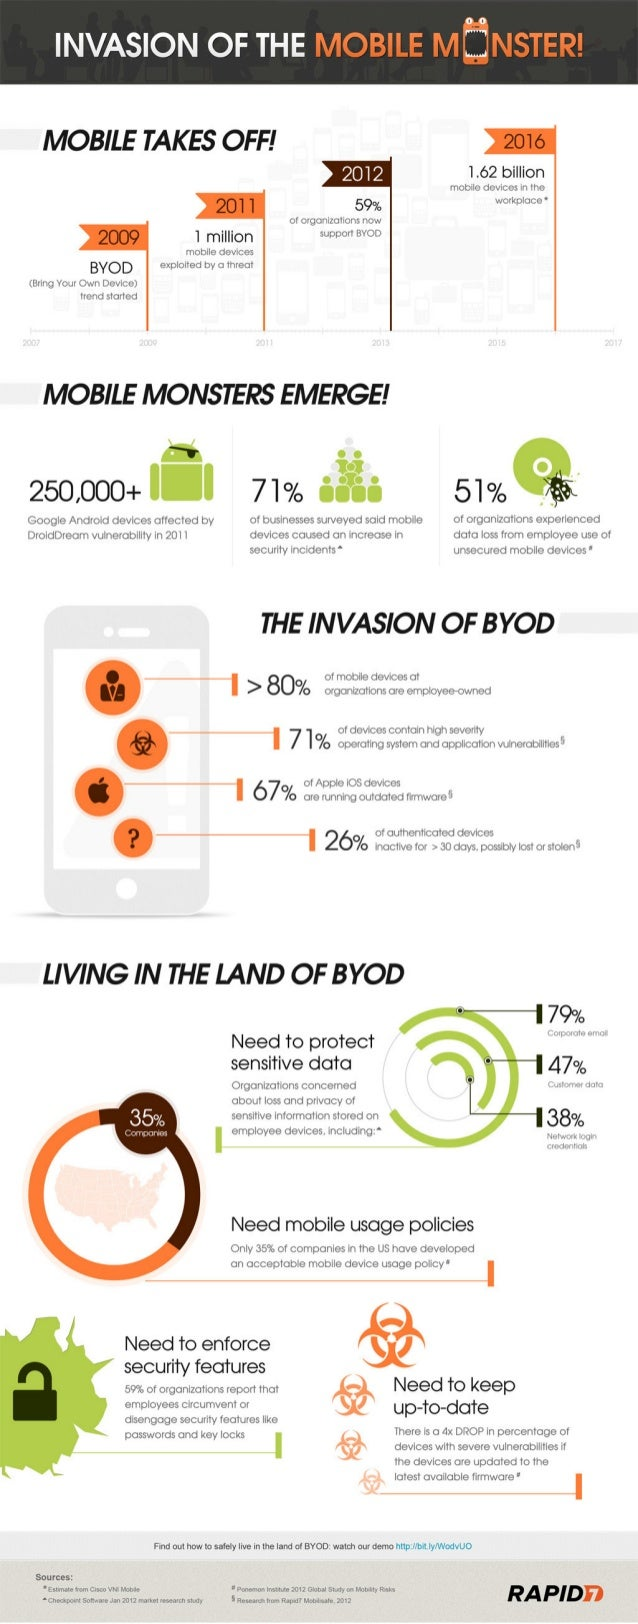 Expansion of BYOD (Bring your own device) and Mobile Security